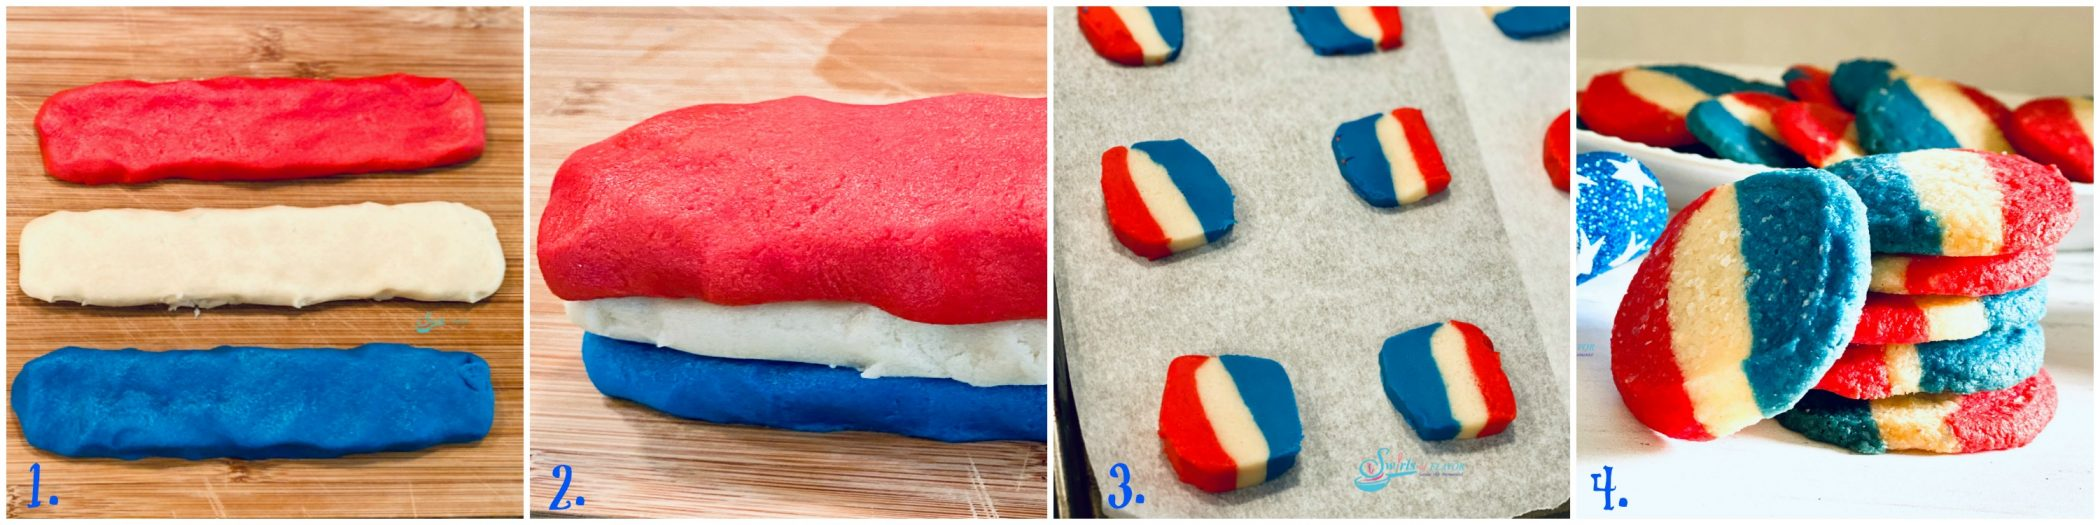 Steps for making red white and blue cookies